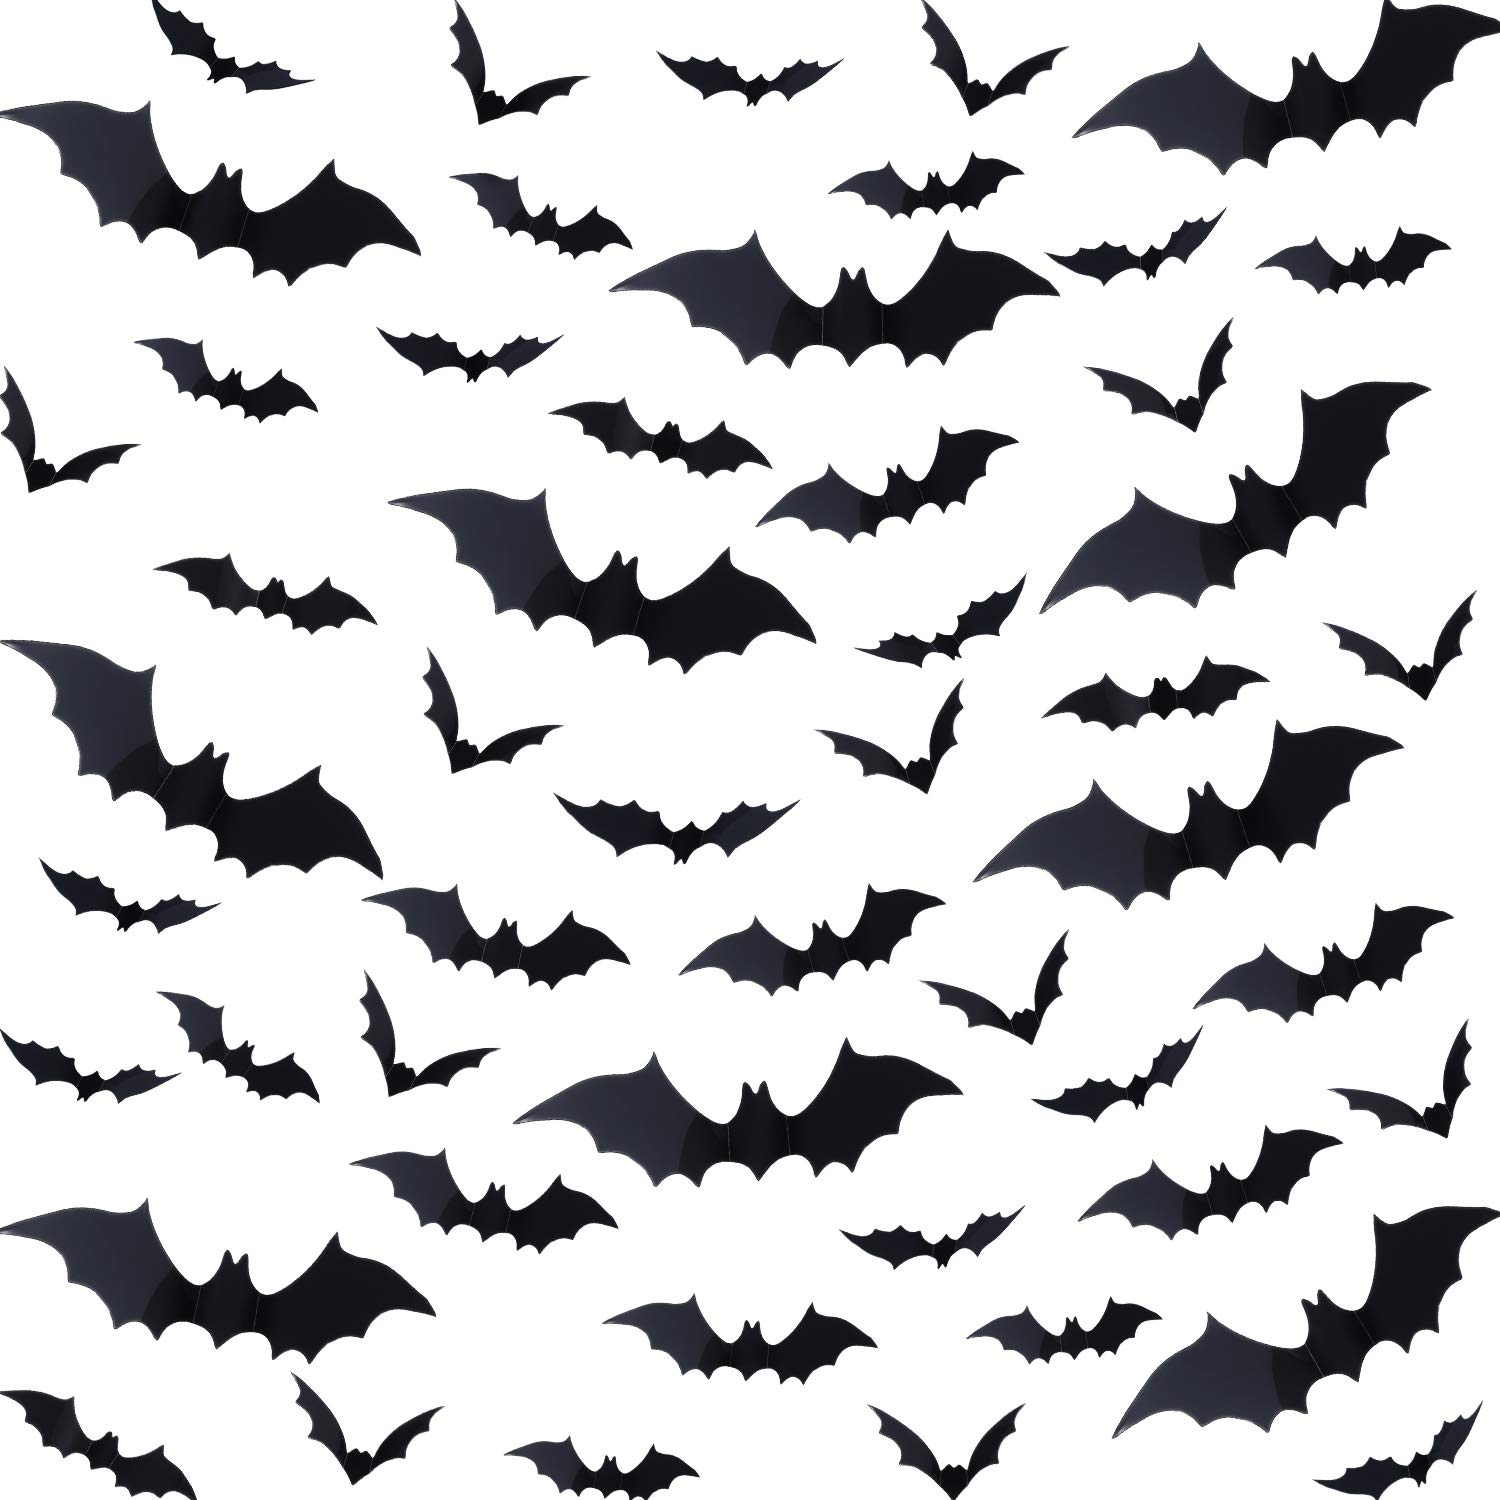 144 Pieces Halloween Scary Plastic 3D Bats Wall Decals Stickers, DIY Halloween Party Supplies PVC 3D Decorative Scary Black Bats, Window Decor Party Supplies Decoration Boao